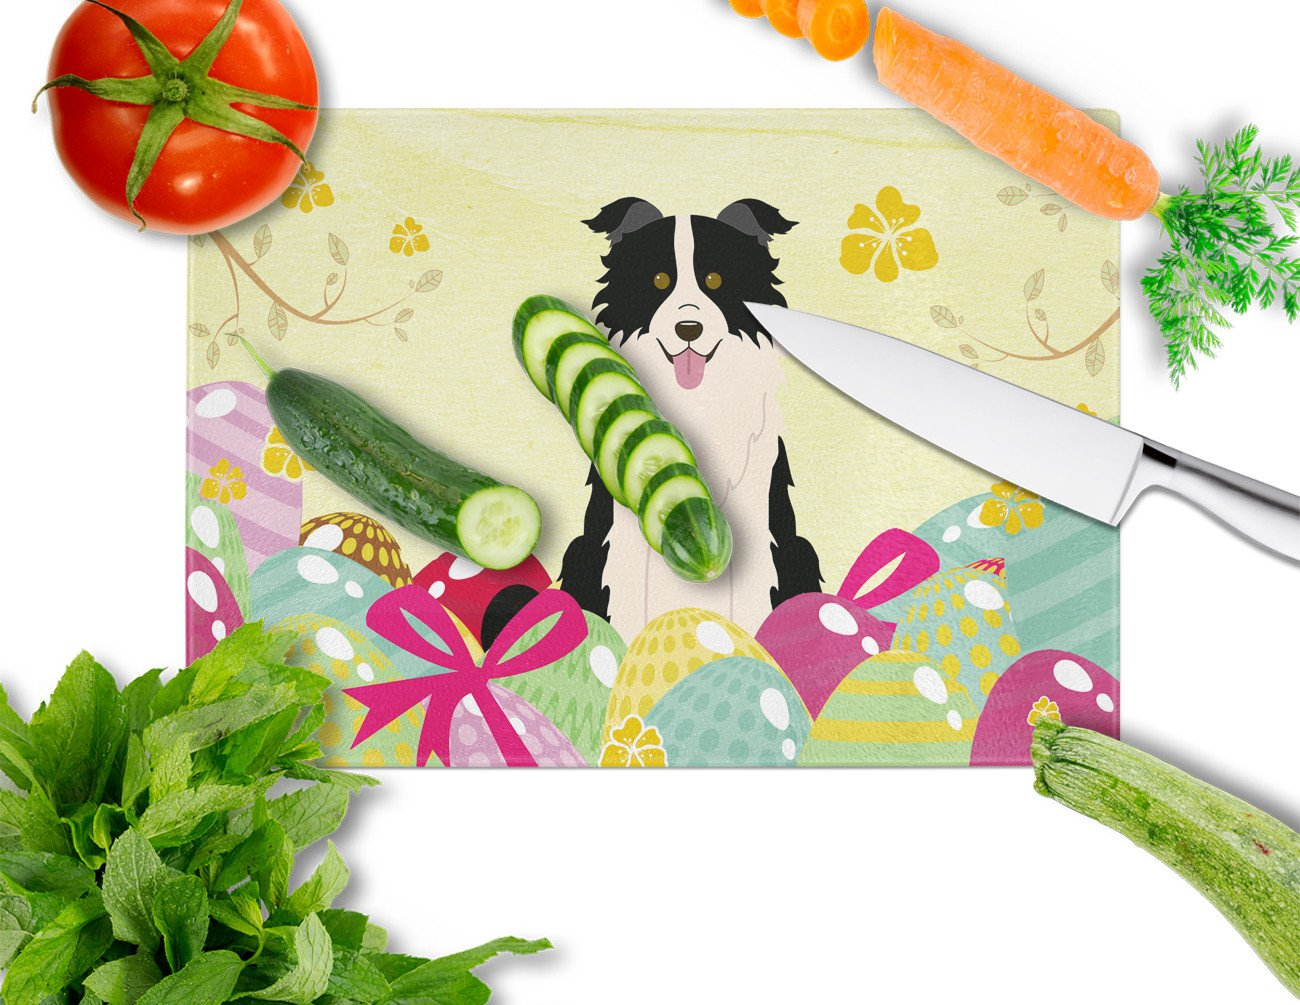 Easter Eggs Border Collie Black White Glass Cutting Board Large BB6118LCB by Caroline's Treasures